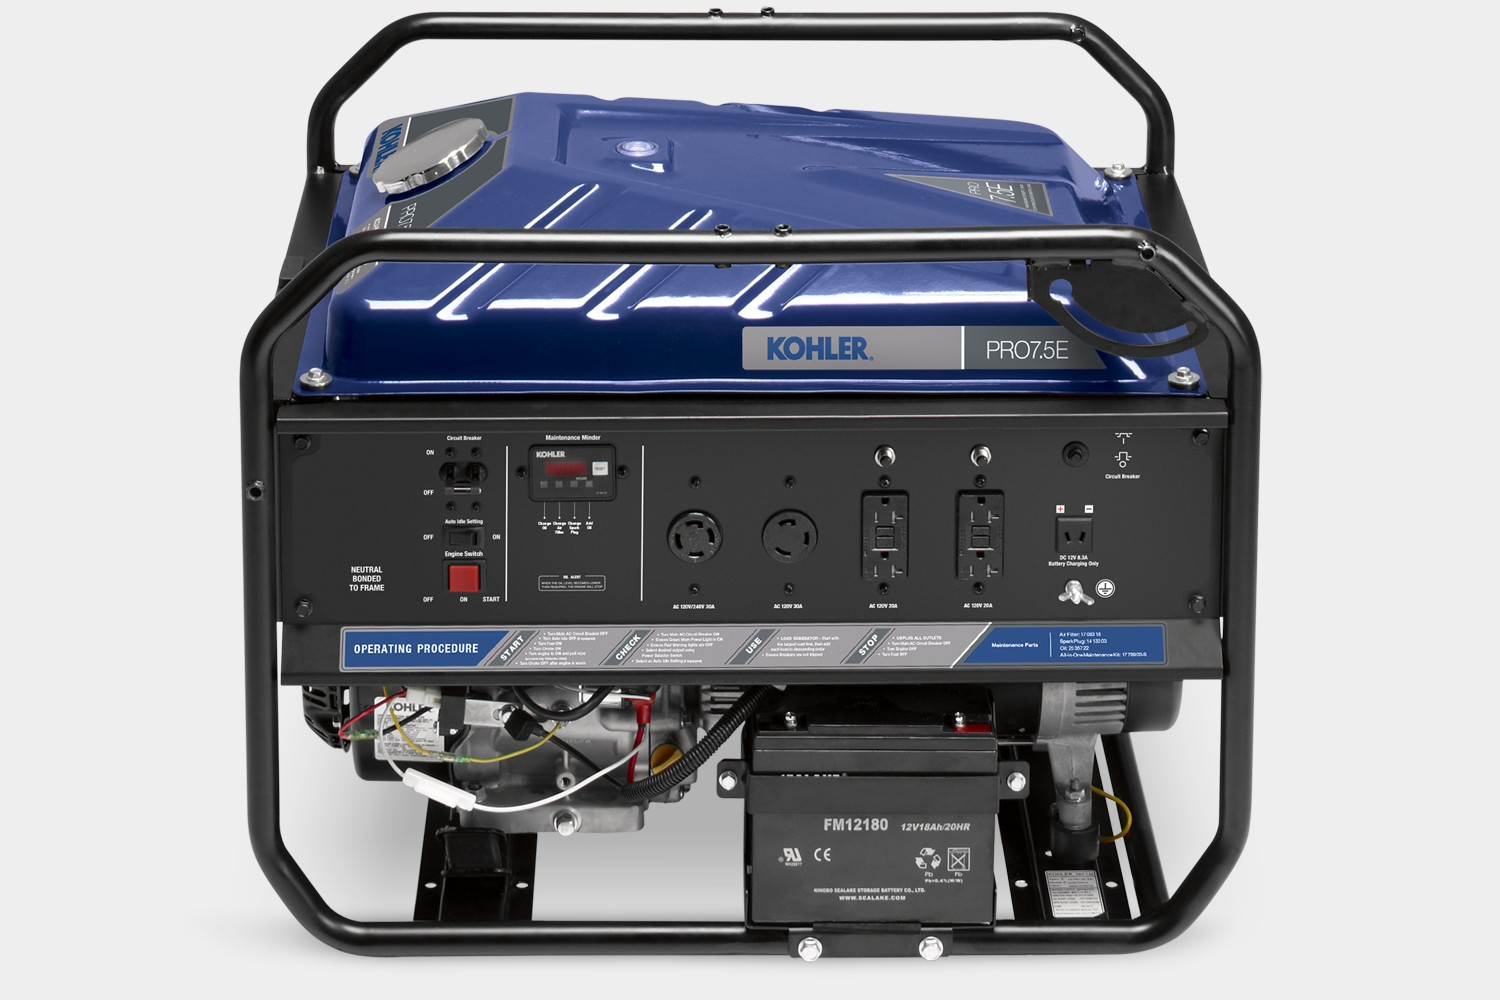 South Shore Generator - Kohler Pro7.5e portable generator